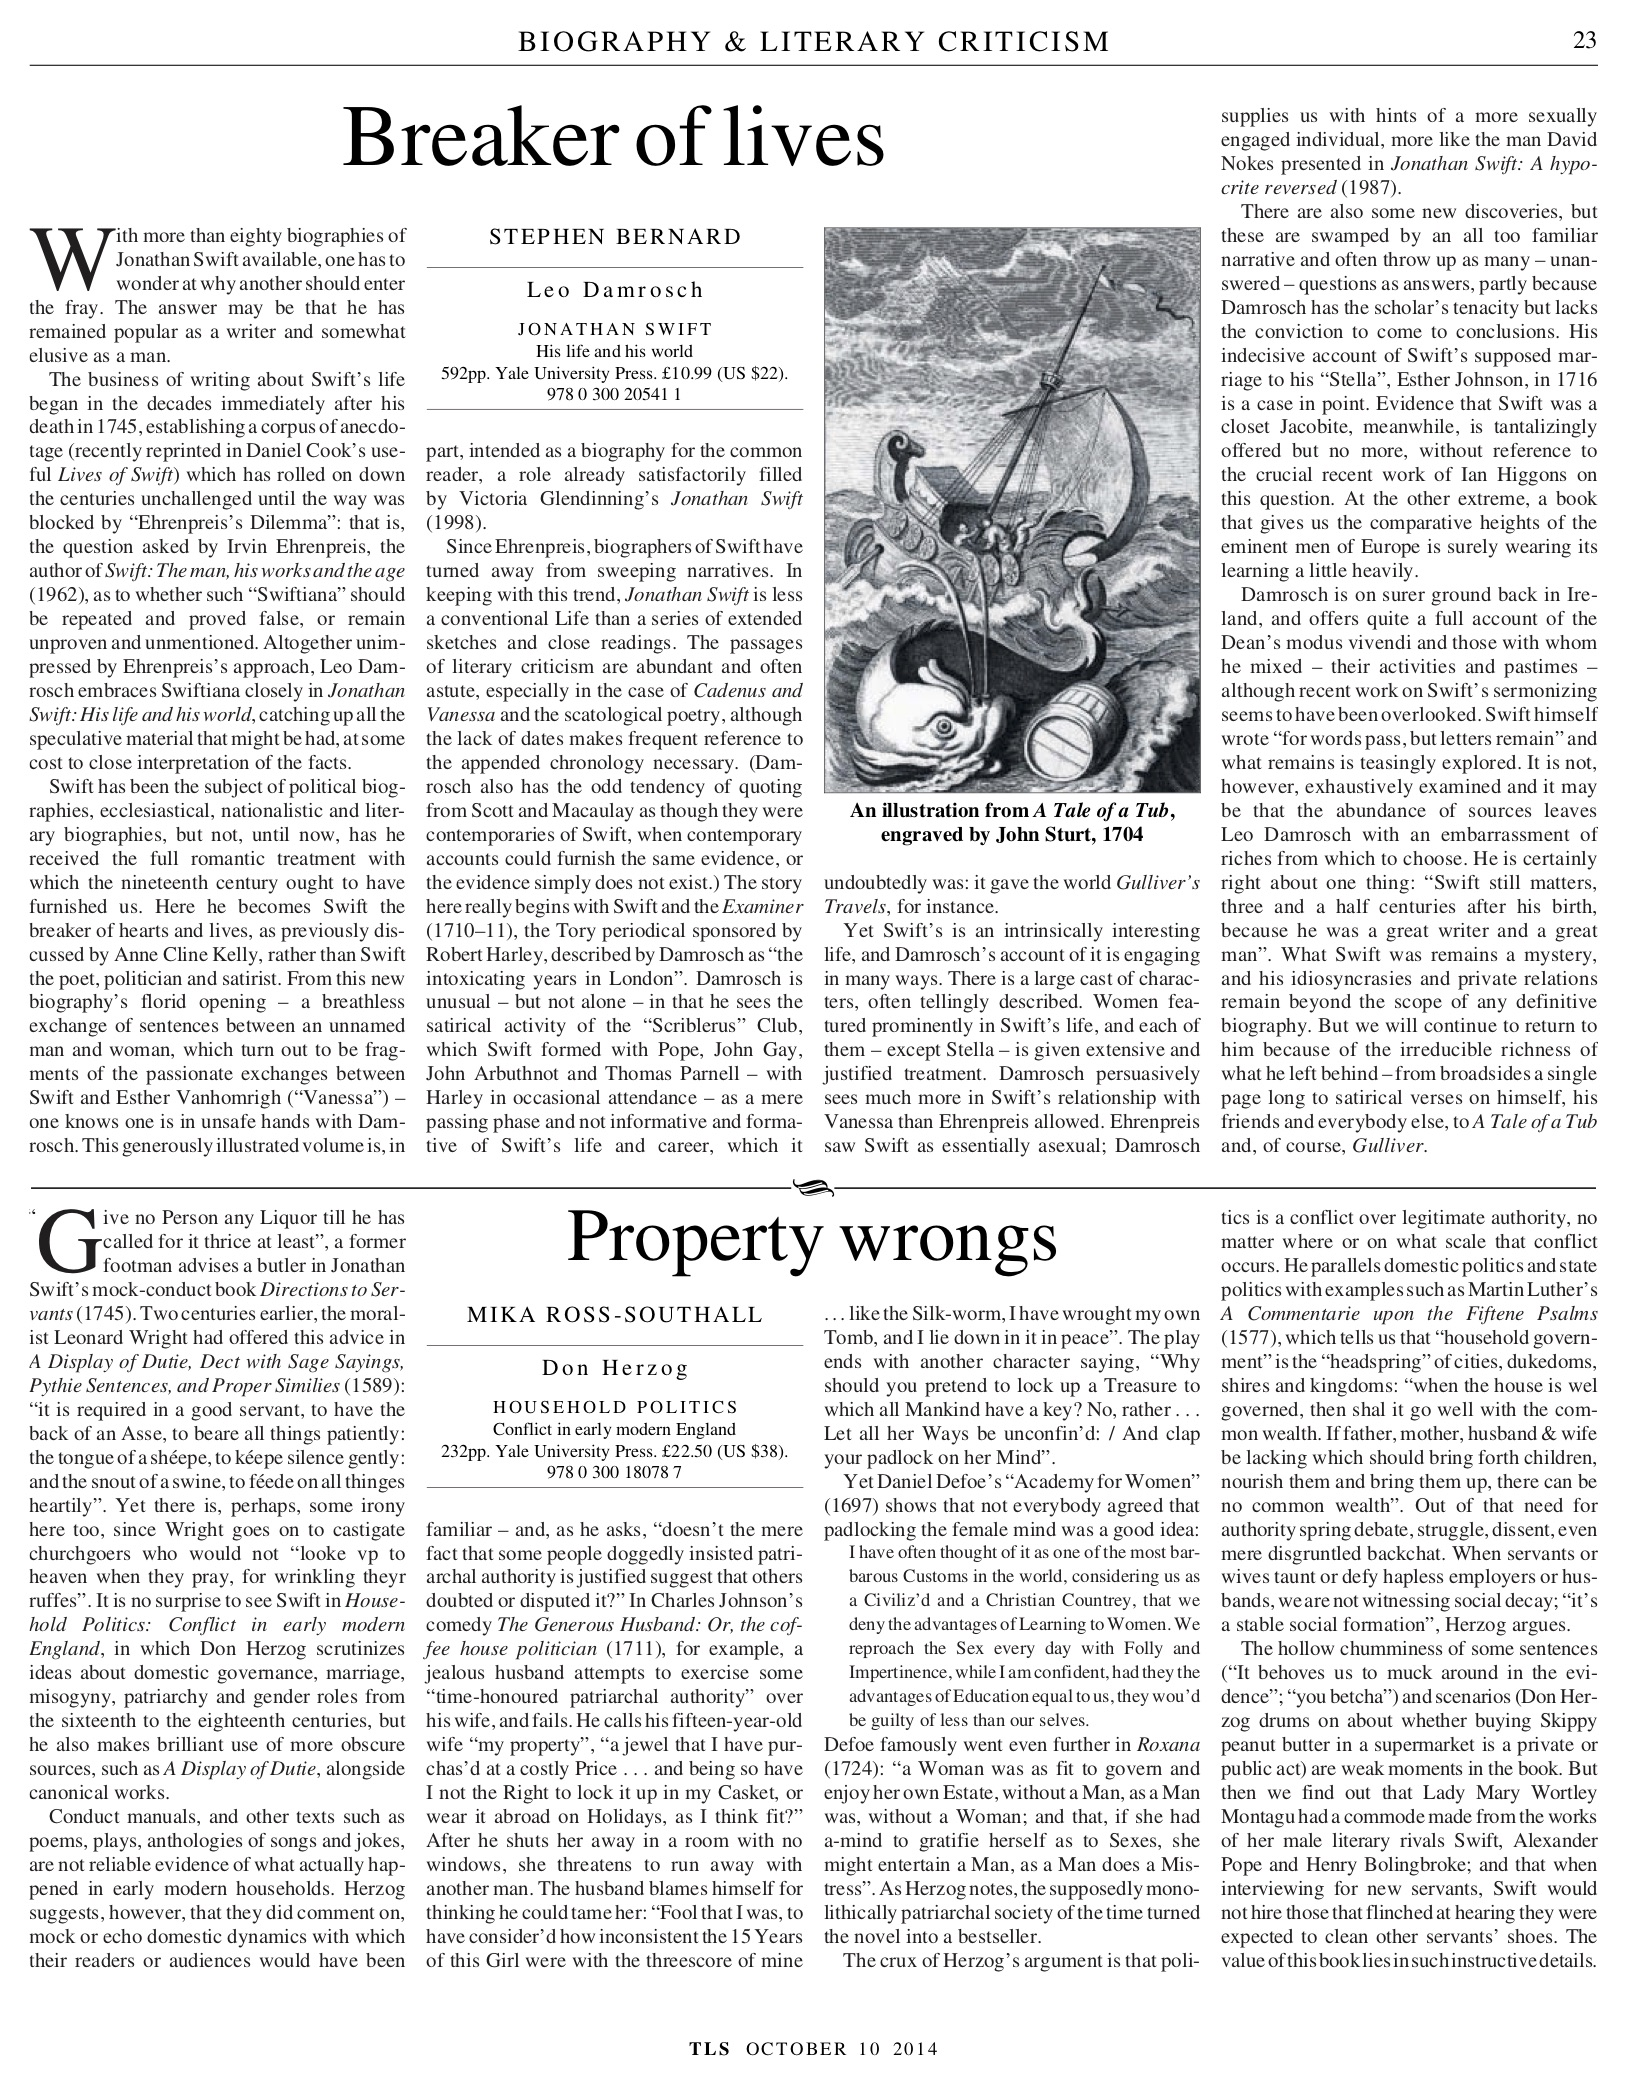 Property wrongs, Don Herzog, Published in The Times Literary Supplement, October 10, 2014